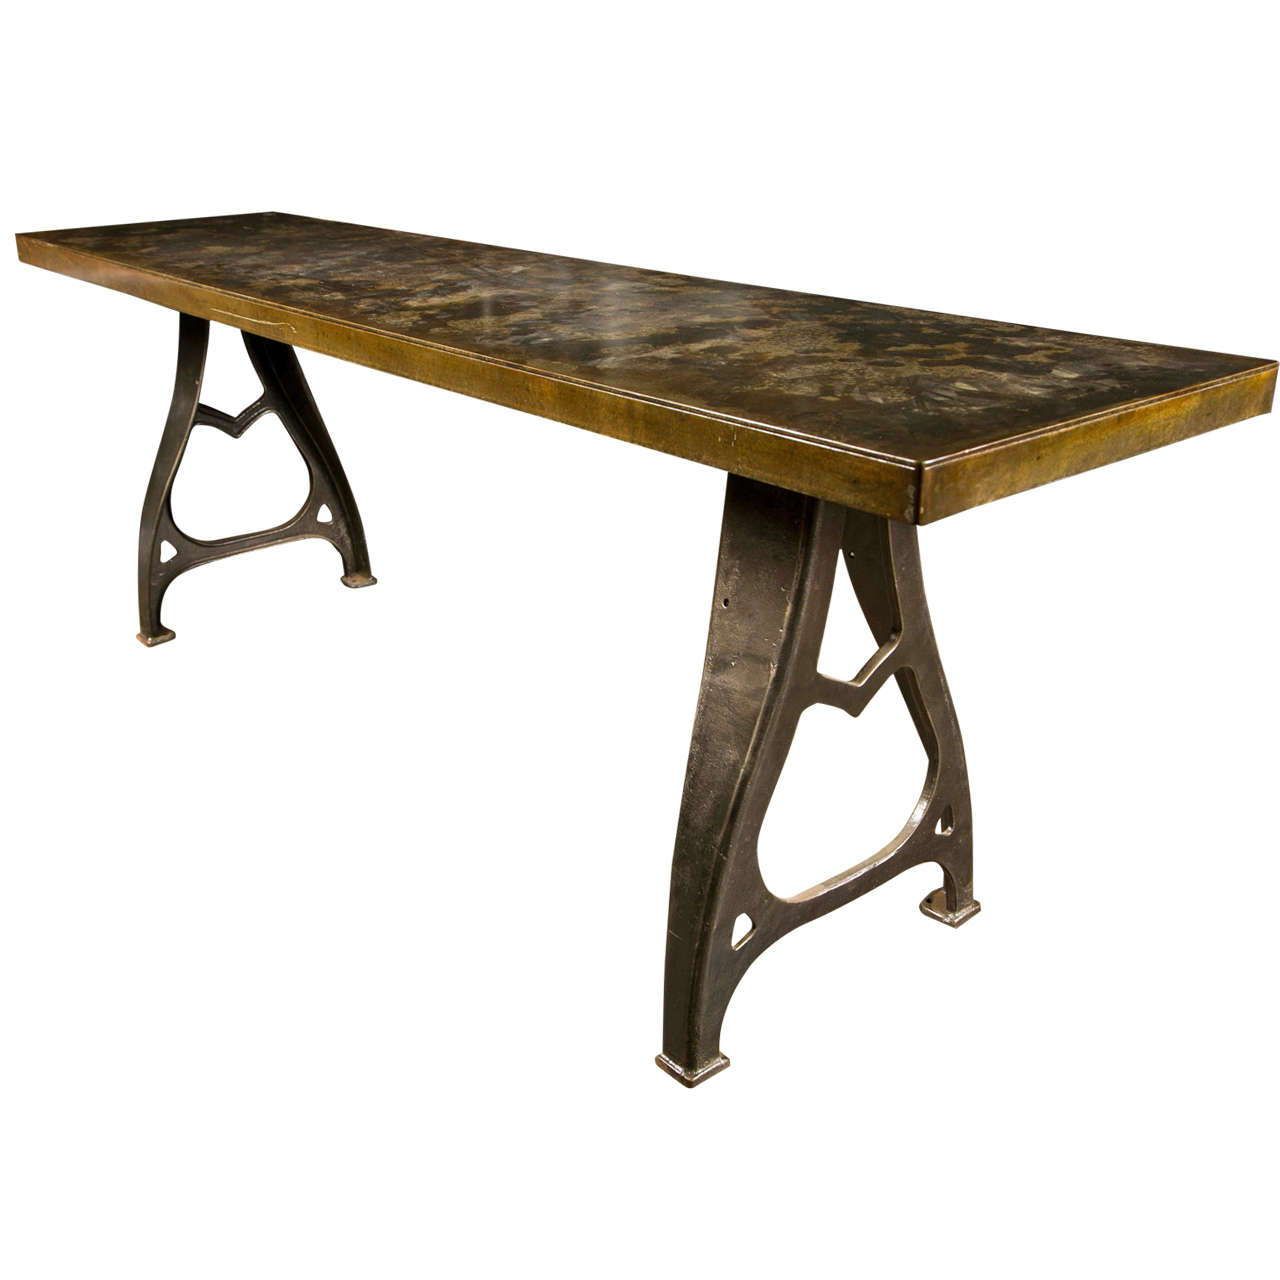 id f kitchen work tables Industrial Work Table With Steel Top And Cast Iron Legs Mid century 1